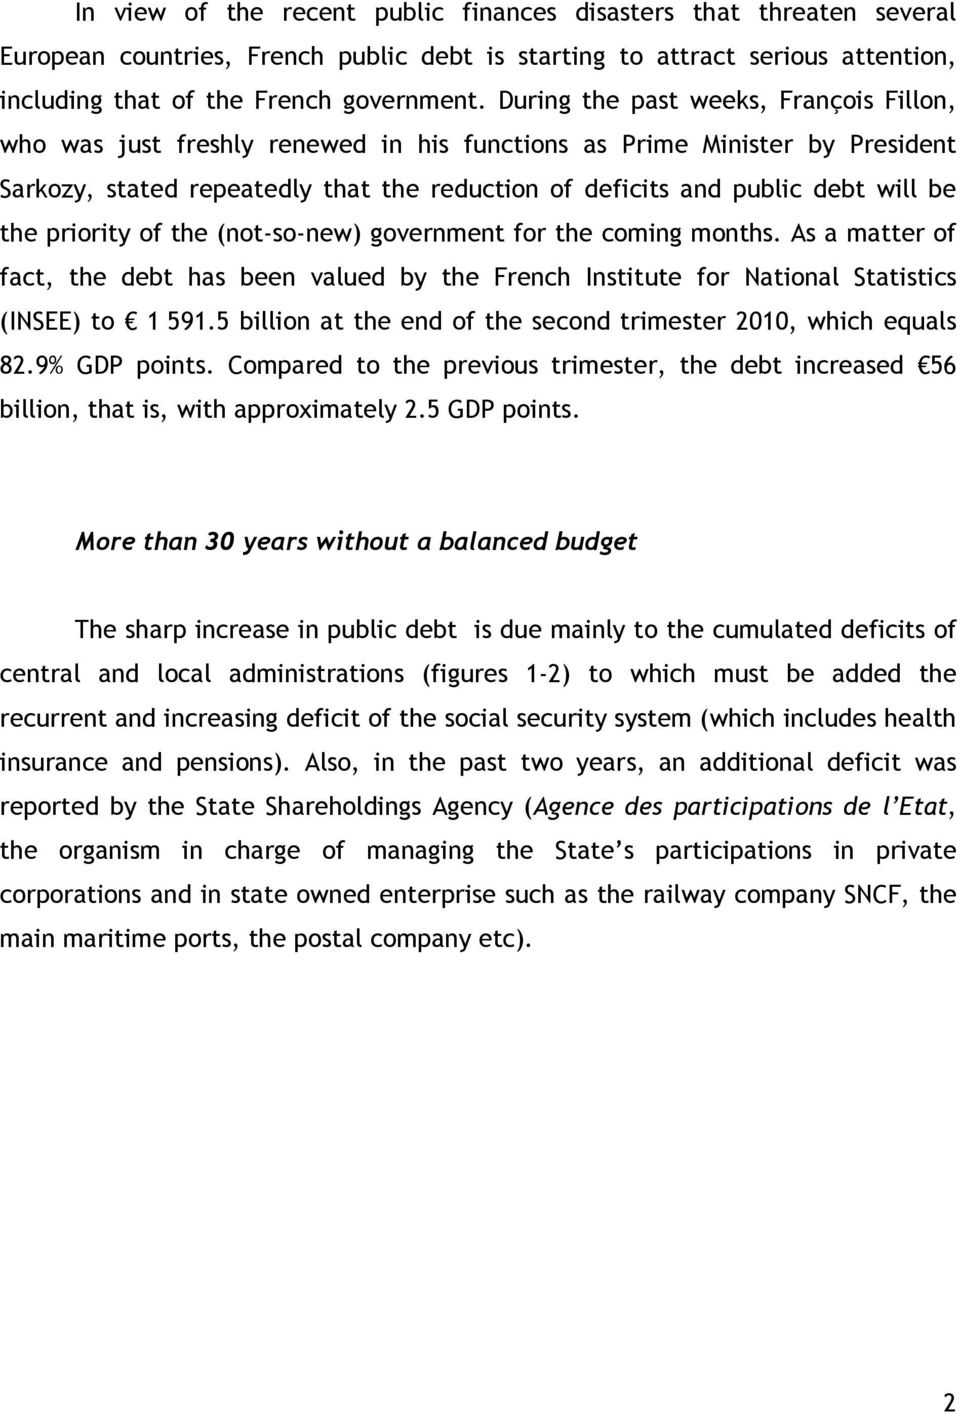 the priority of the (not-so-new) government for the coming months. As a matter of fact, the debt has been valued by the French Institute for National Statistics (INSEE) to 1 591.